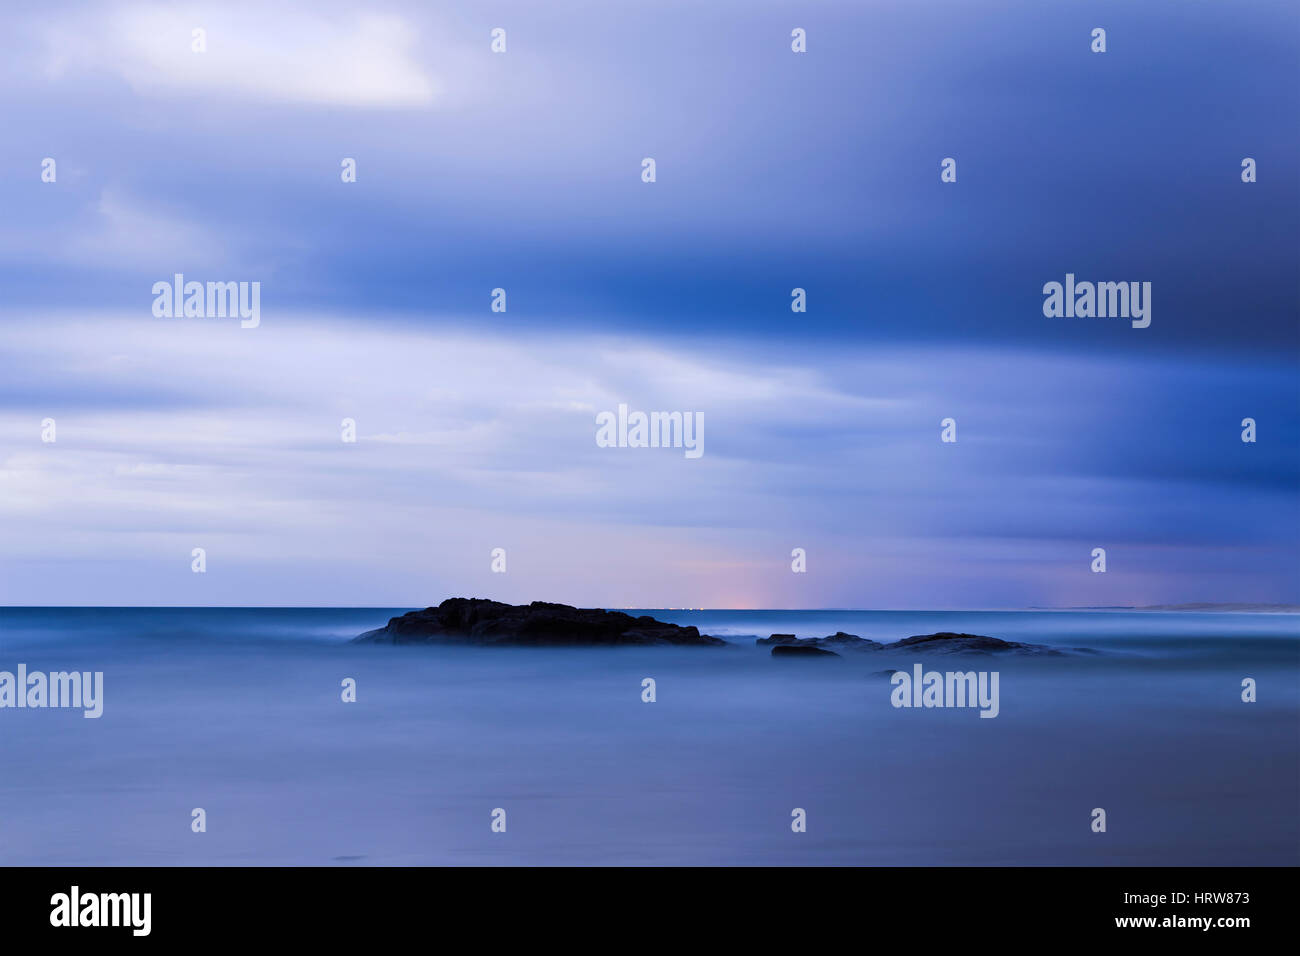 BLue hour over Pacific ocean horizon at Stockton beach in Australia. Minimalistic seascape with blurred waves and - Stock Image